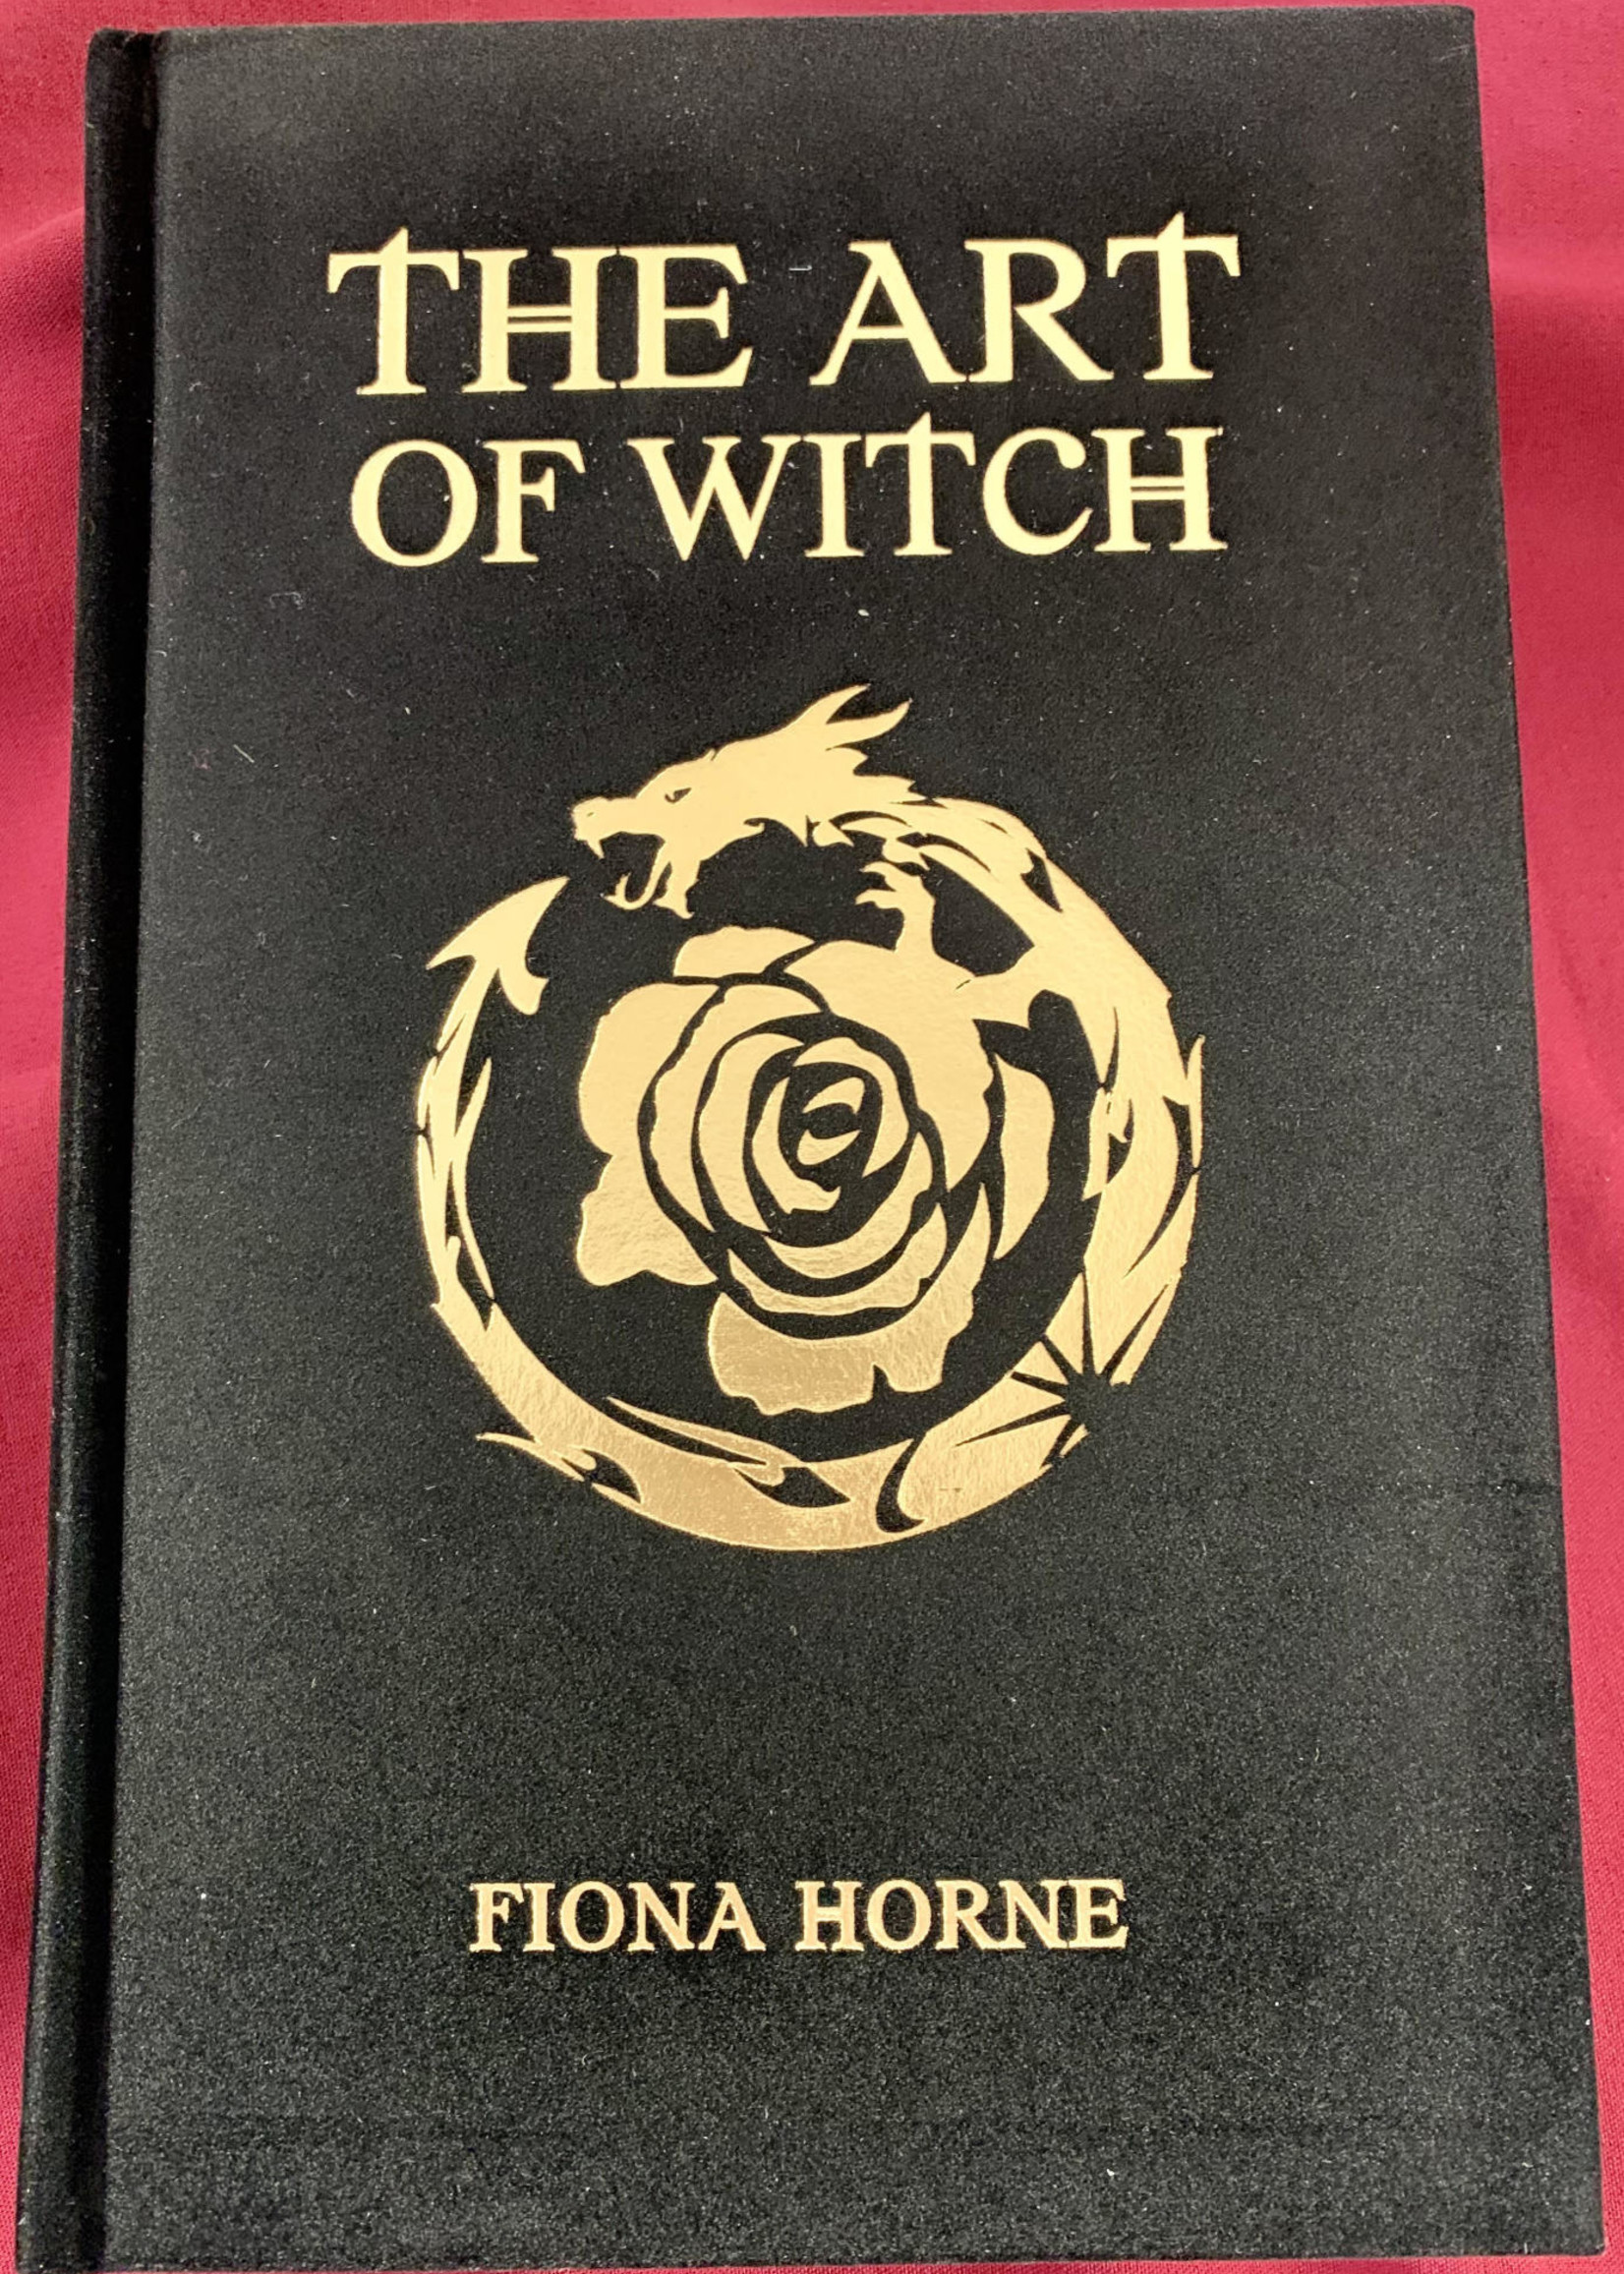 The Art of Witch - Fiona Horne